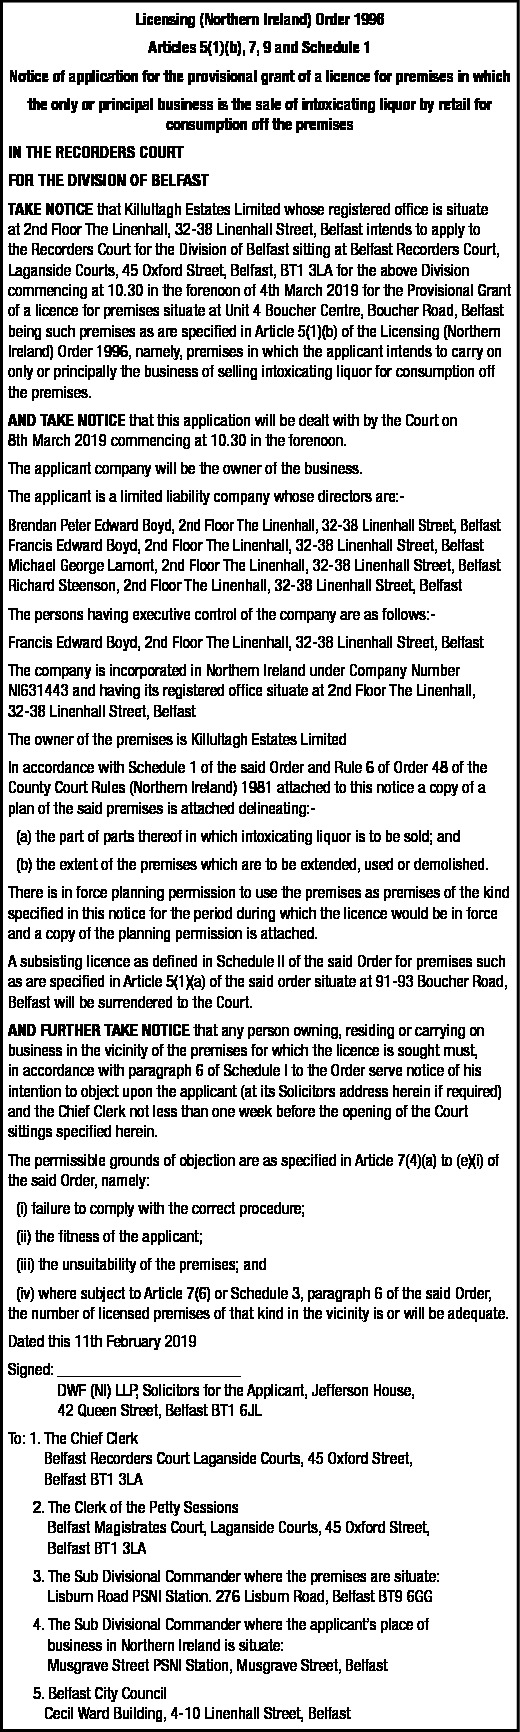 Notice of application for the provisional grant of a licence for premises